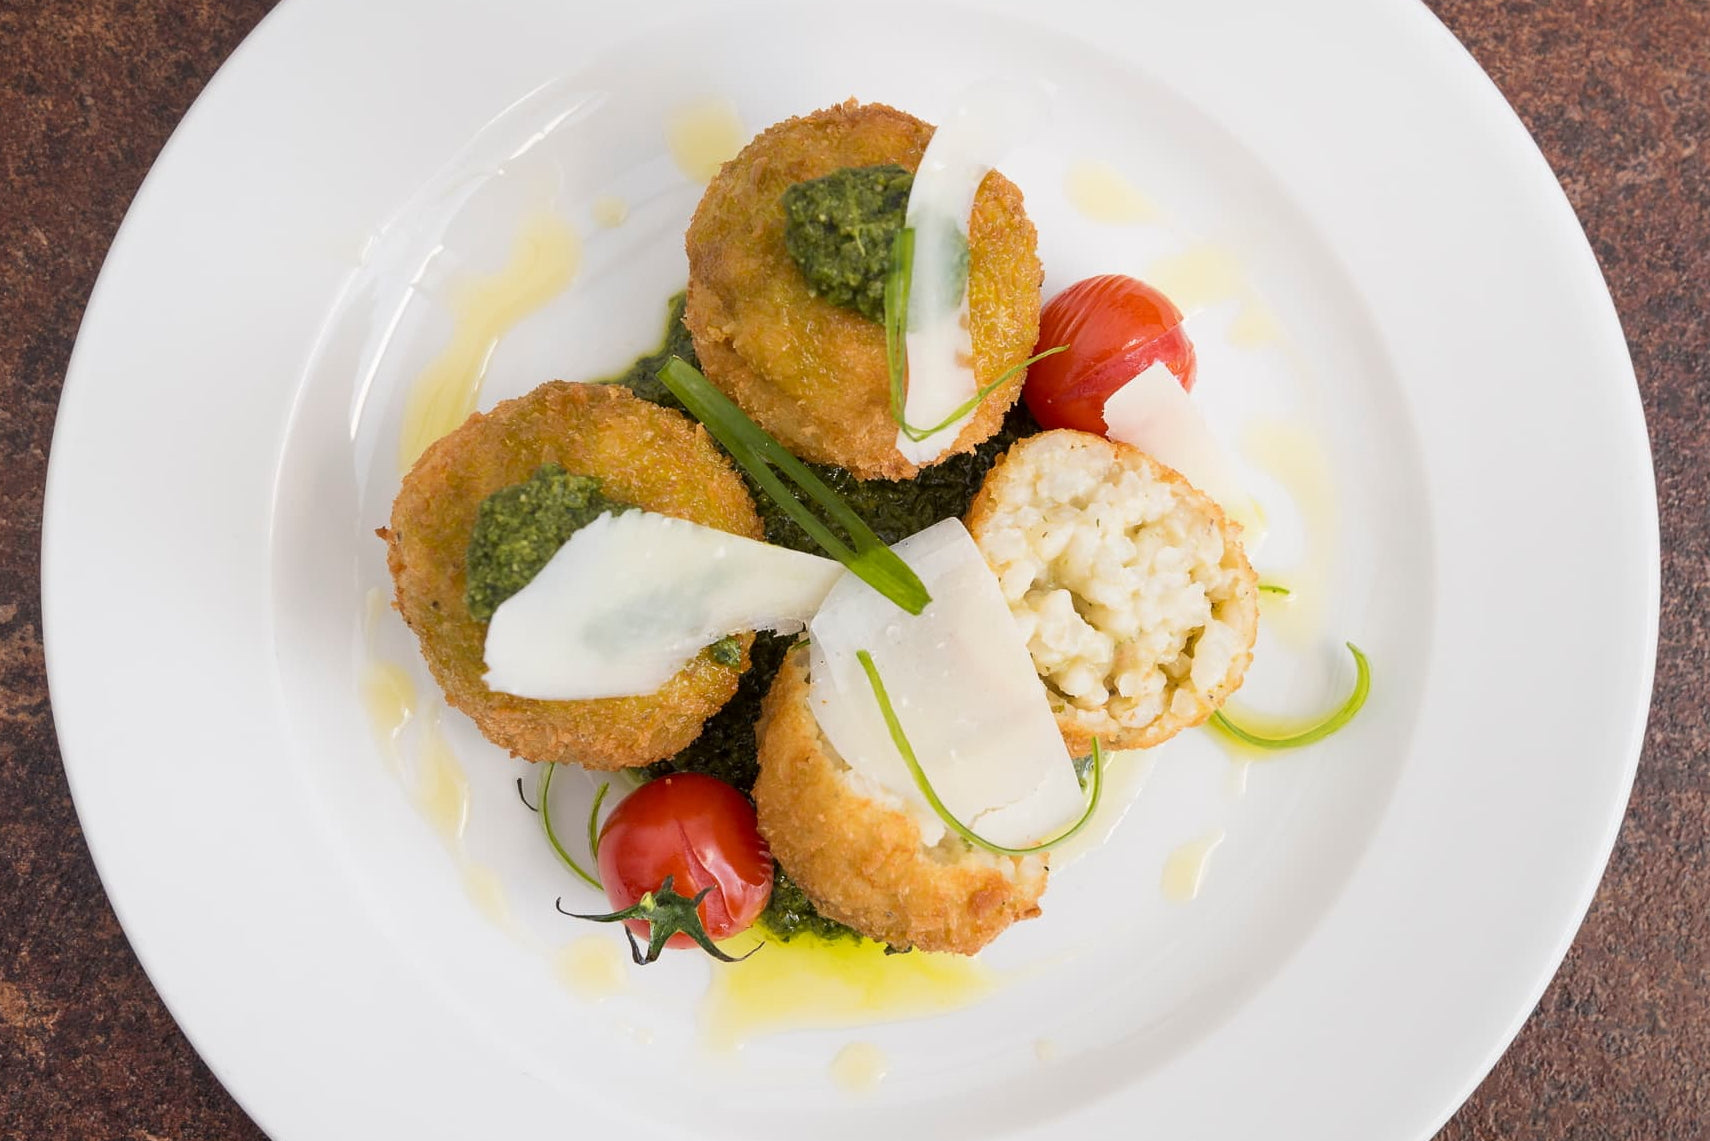 Sun-dried tomato & parmesan arancini – rocket pesto for one or two to share (V)